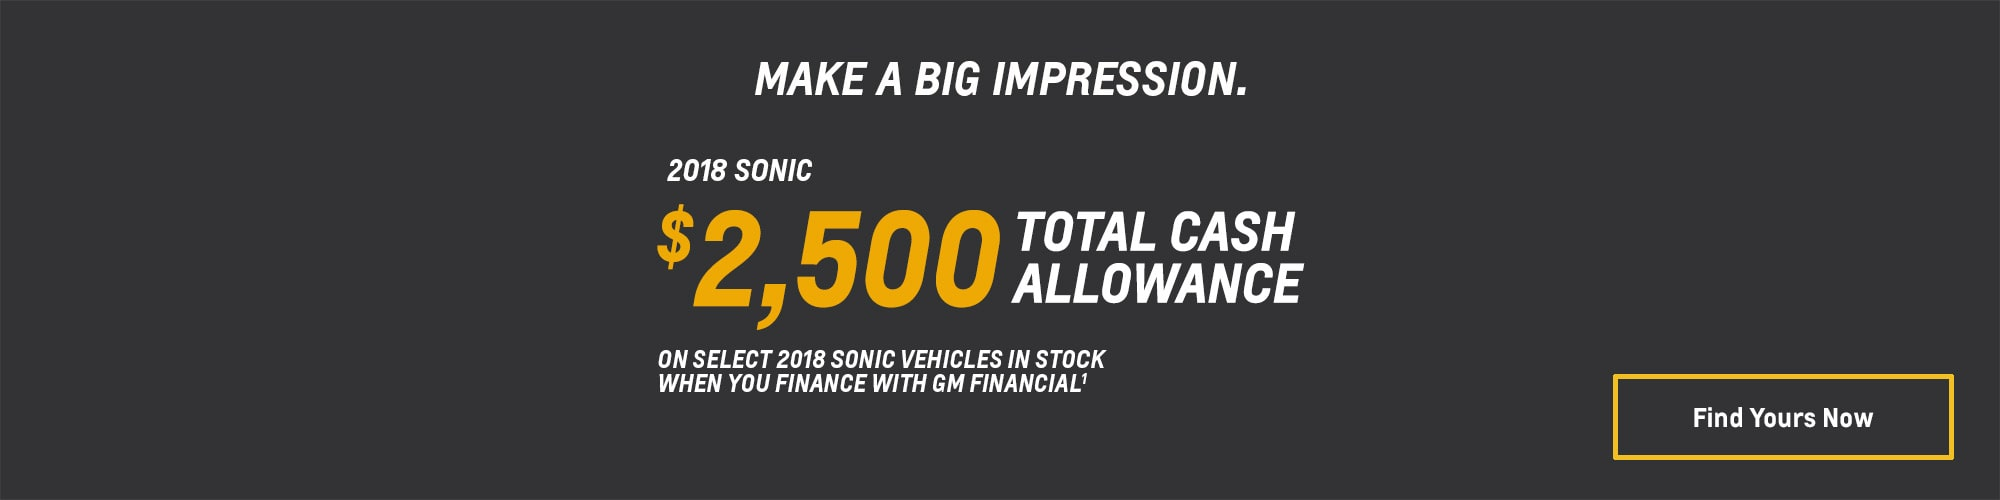 2018 Sonic Small Car Deals and Offers